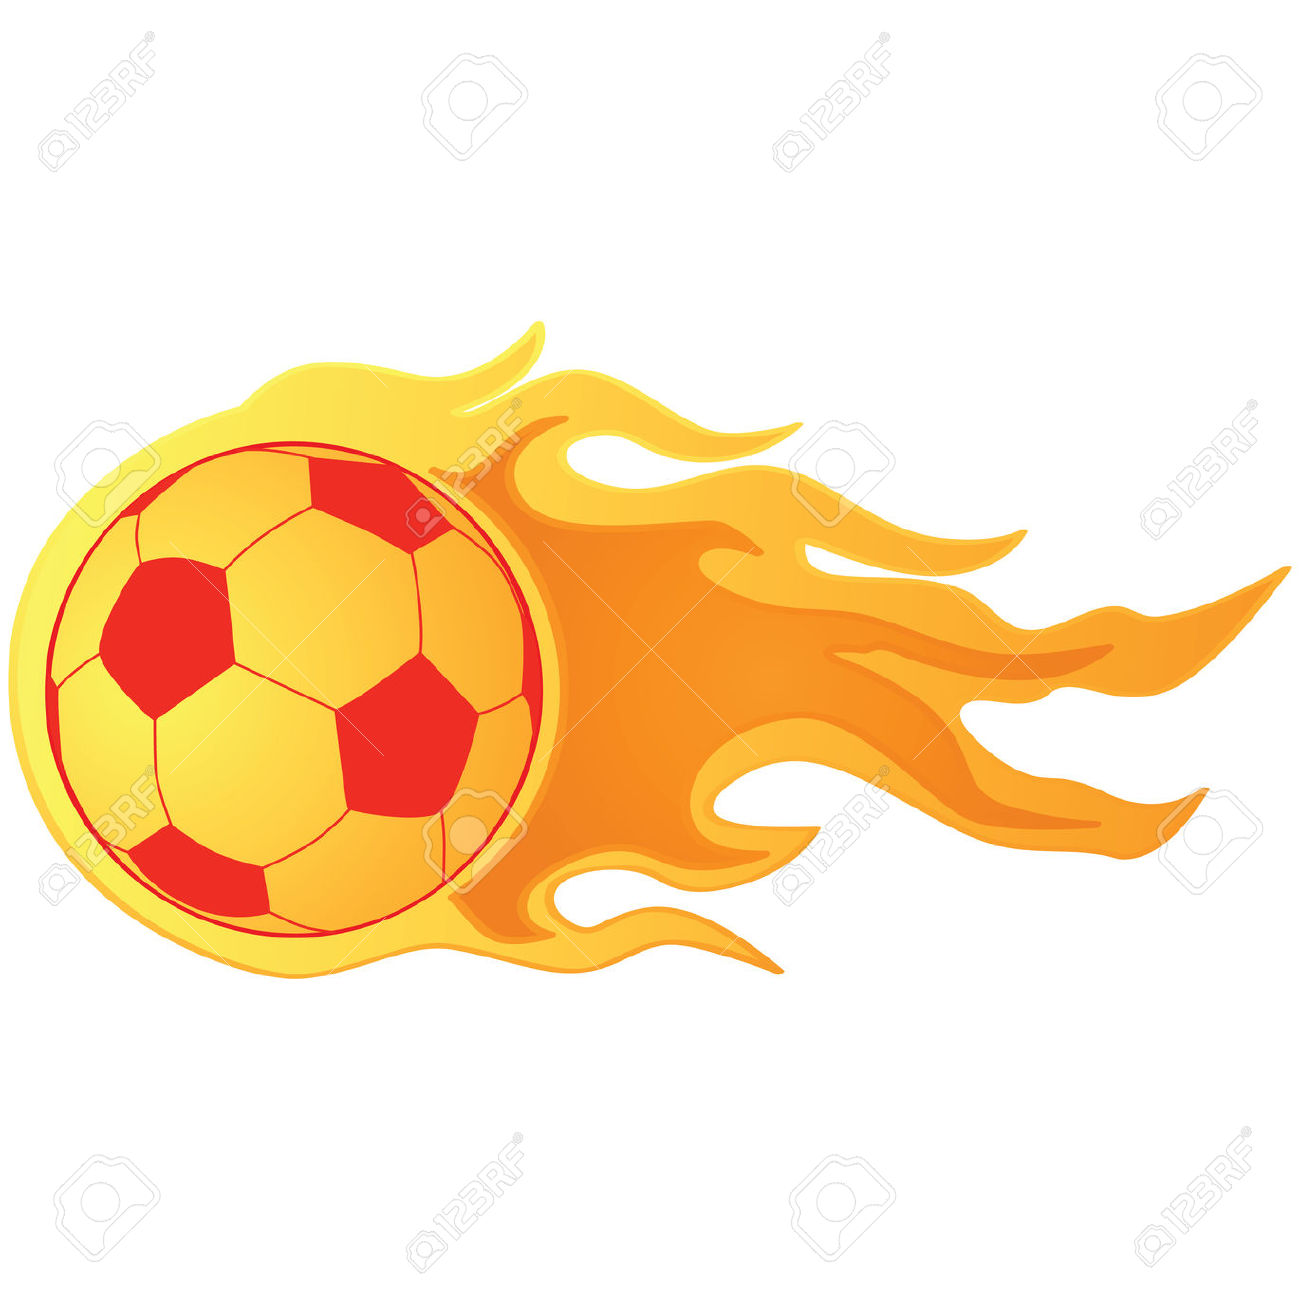 Flaming soccer ball clipart free Flame ball clipart - ClipartFest free